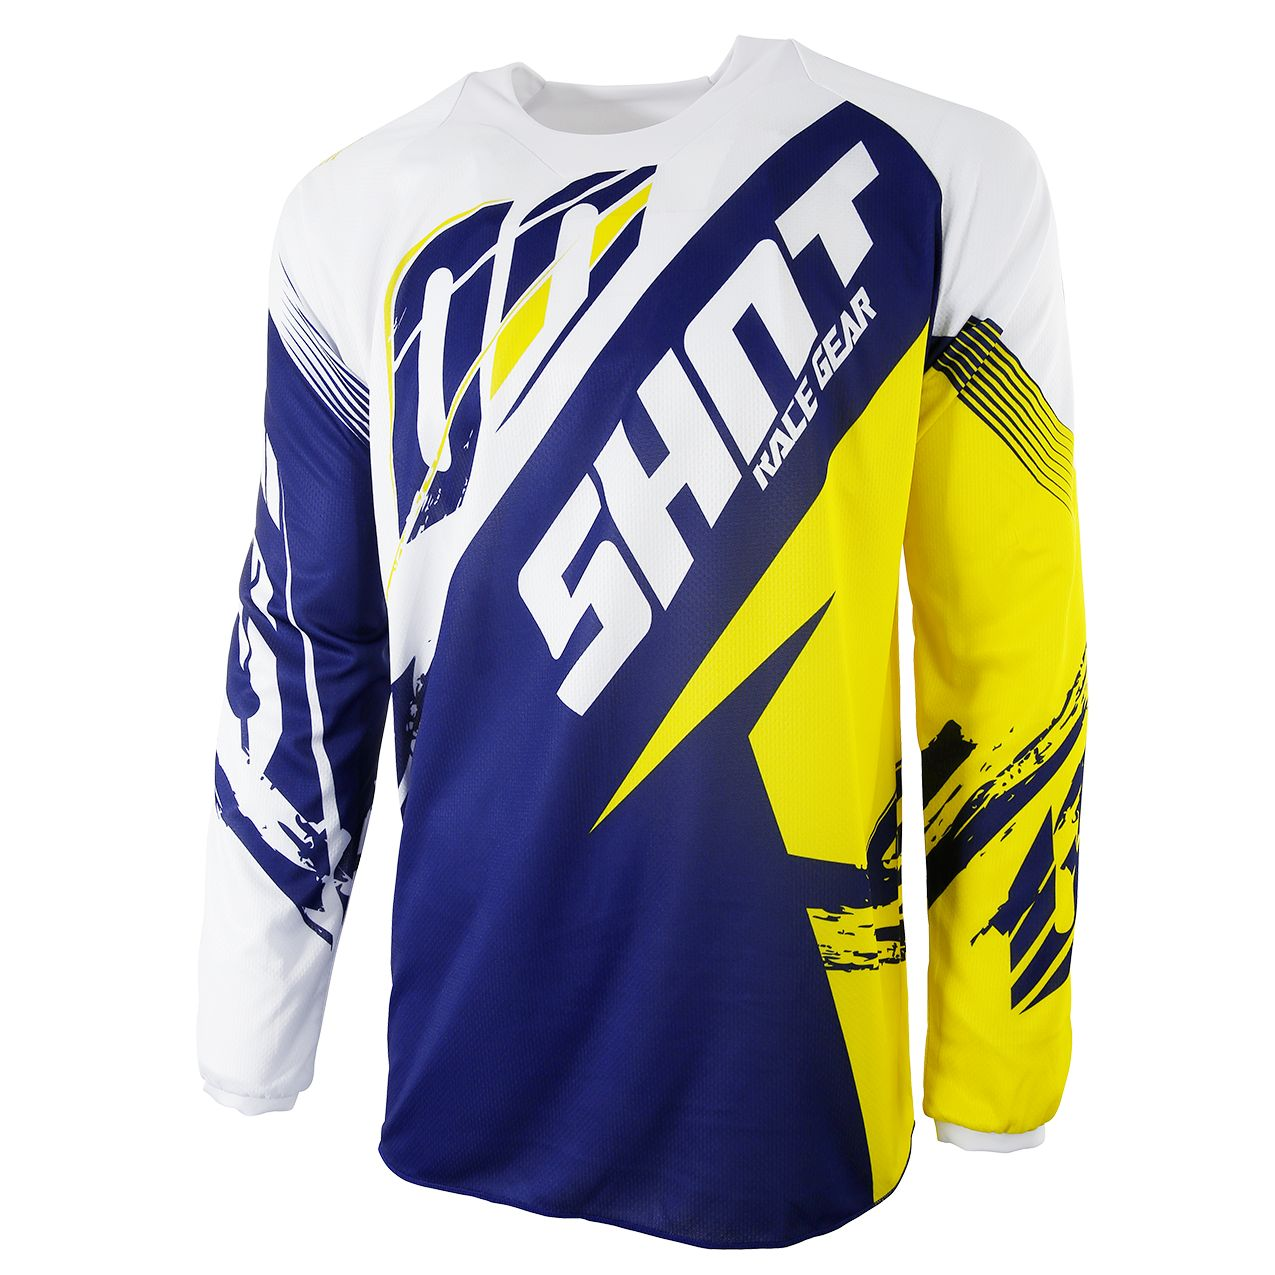 Maillot cross Shot destockage CONTACT FAST BLEU JAUNE  2017